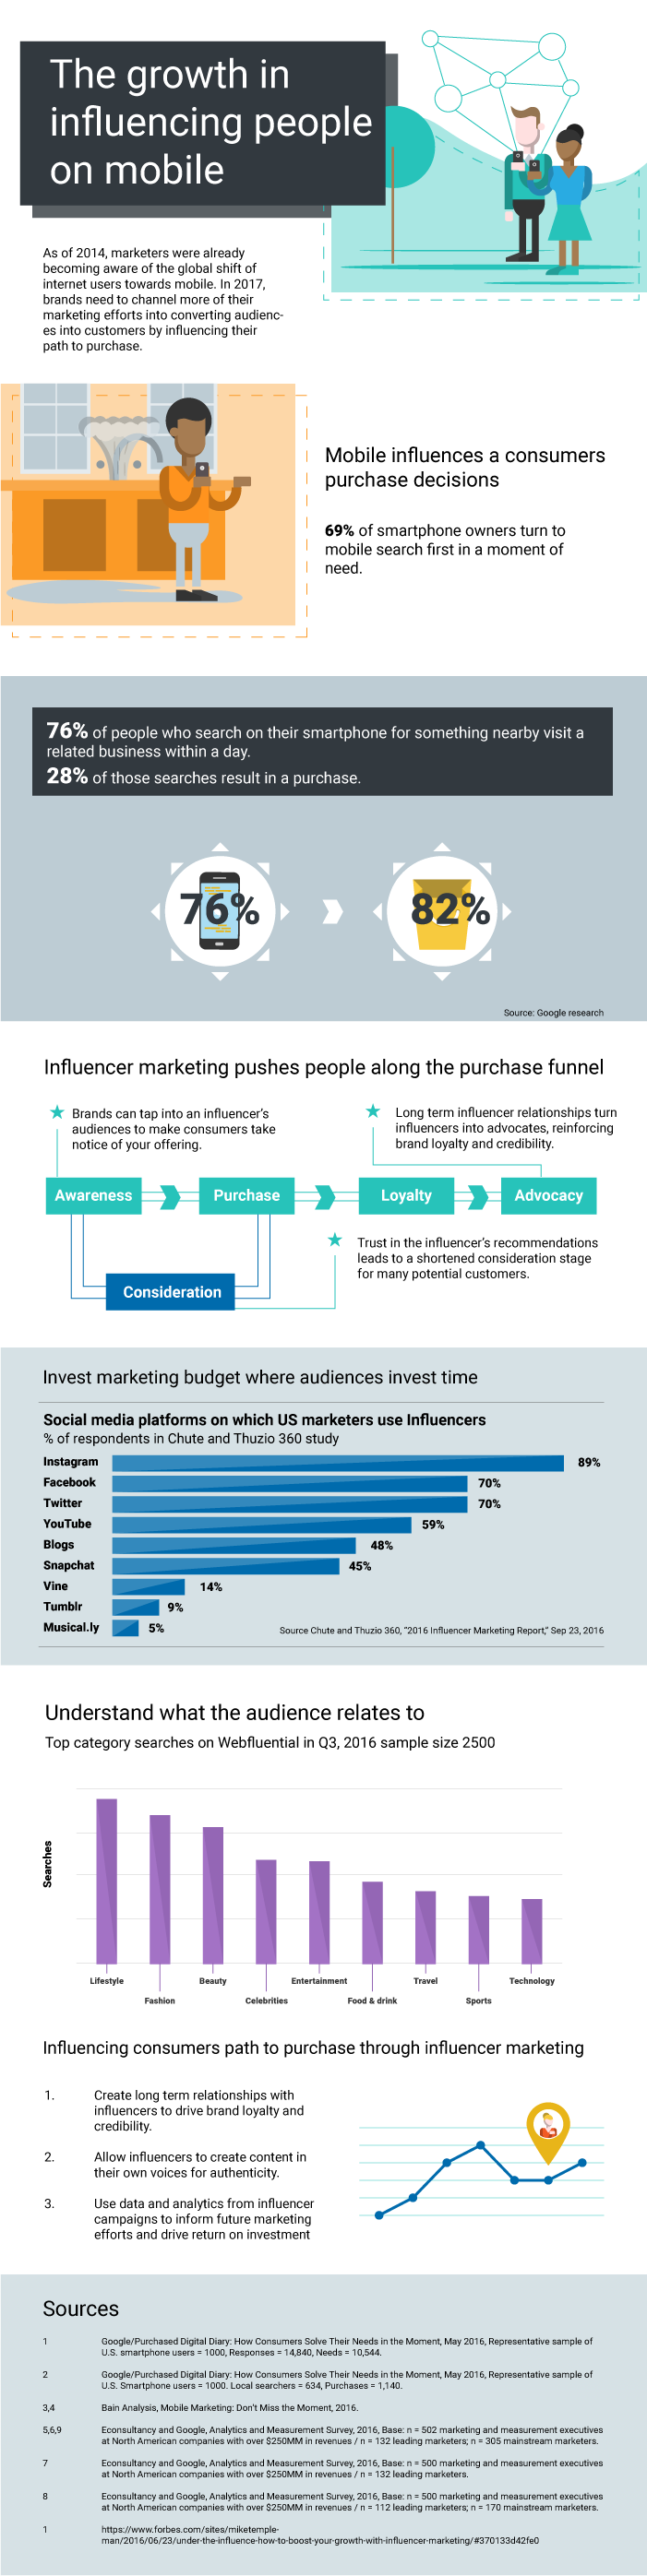 Influencing People on Their Mobile Devices #Infographic